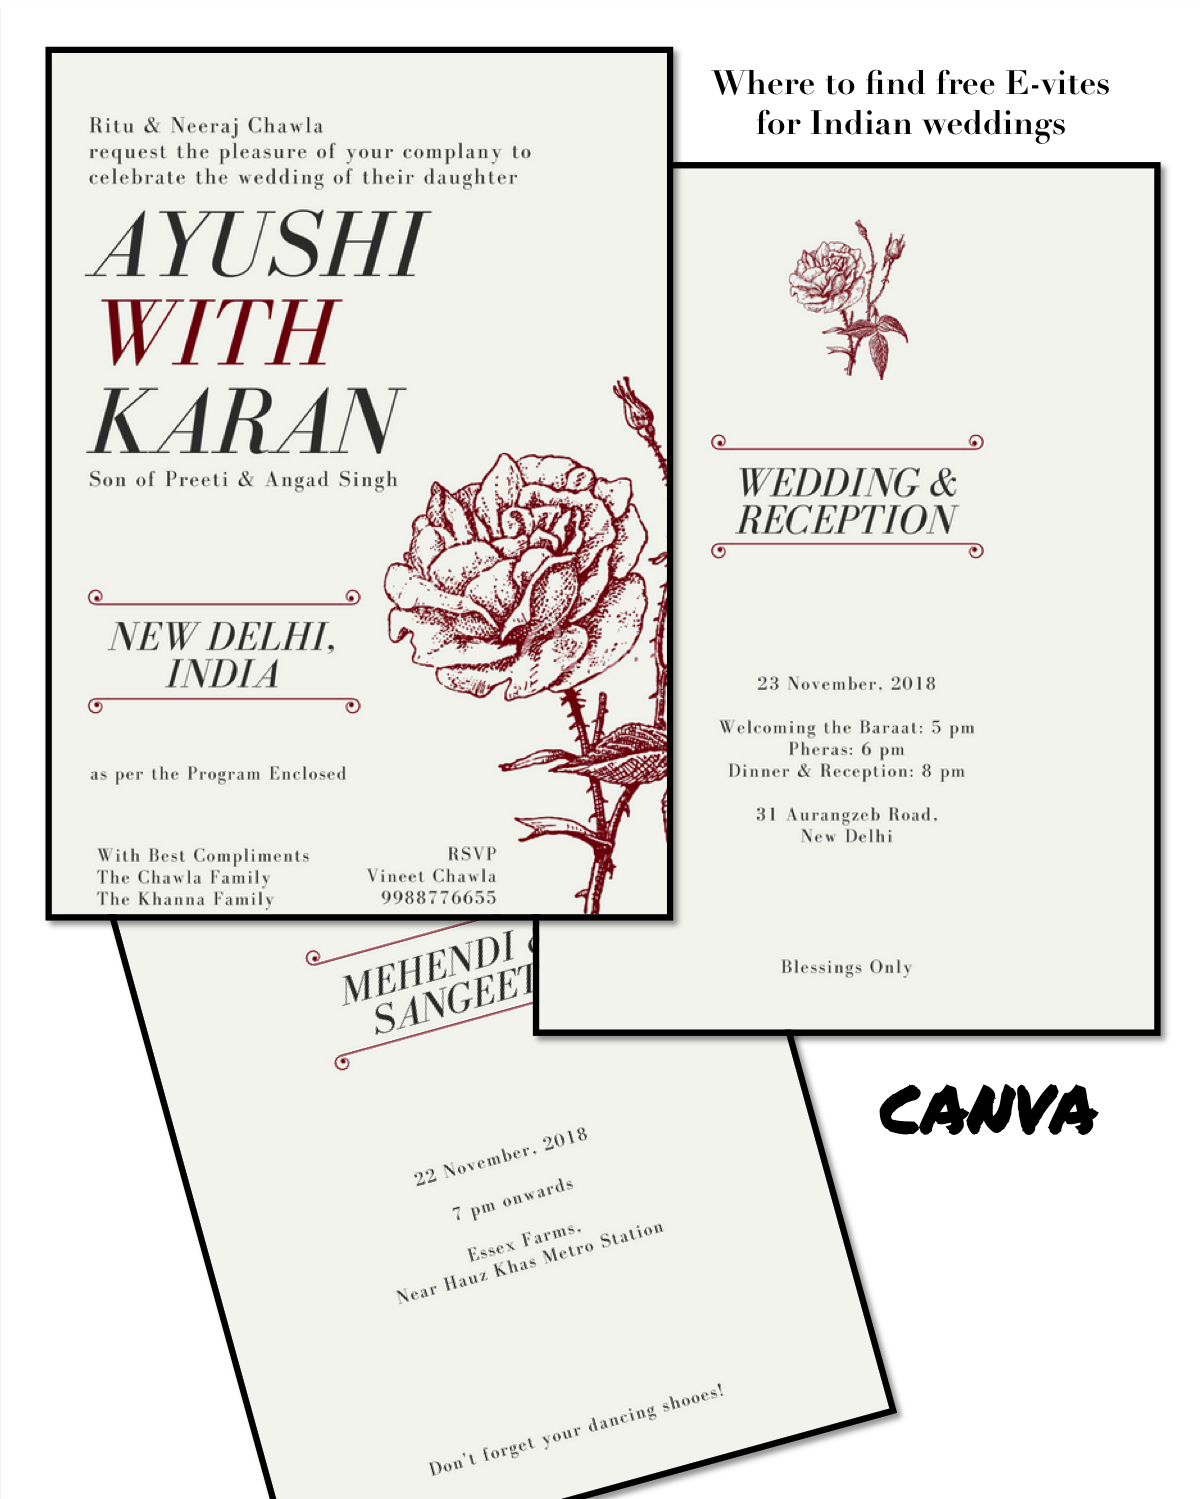 Best Places to Get Free Online Wedding Invitations: For Indian Weddings!